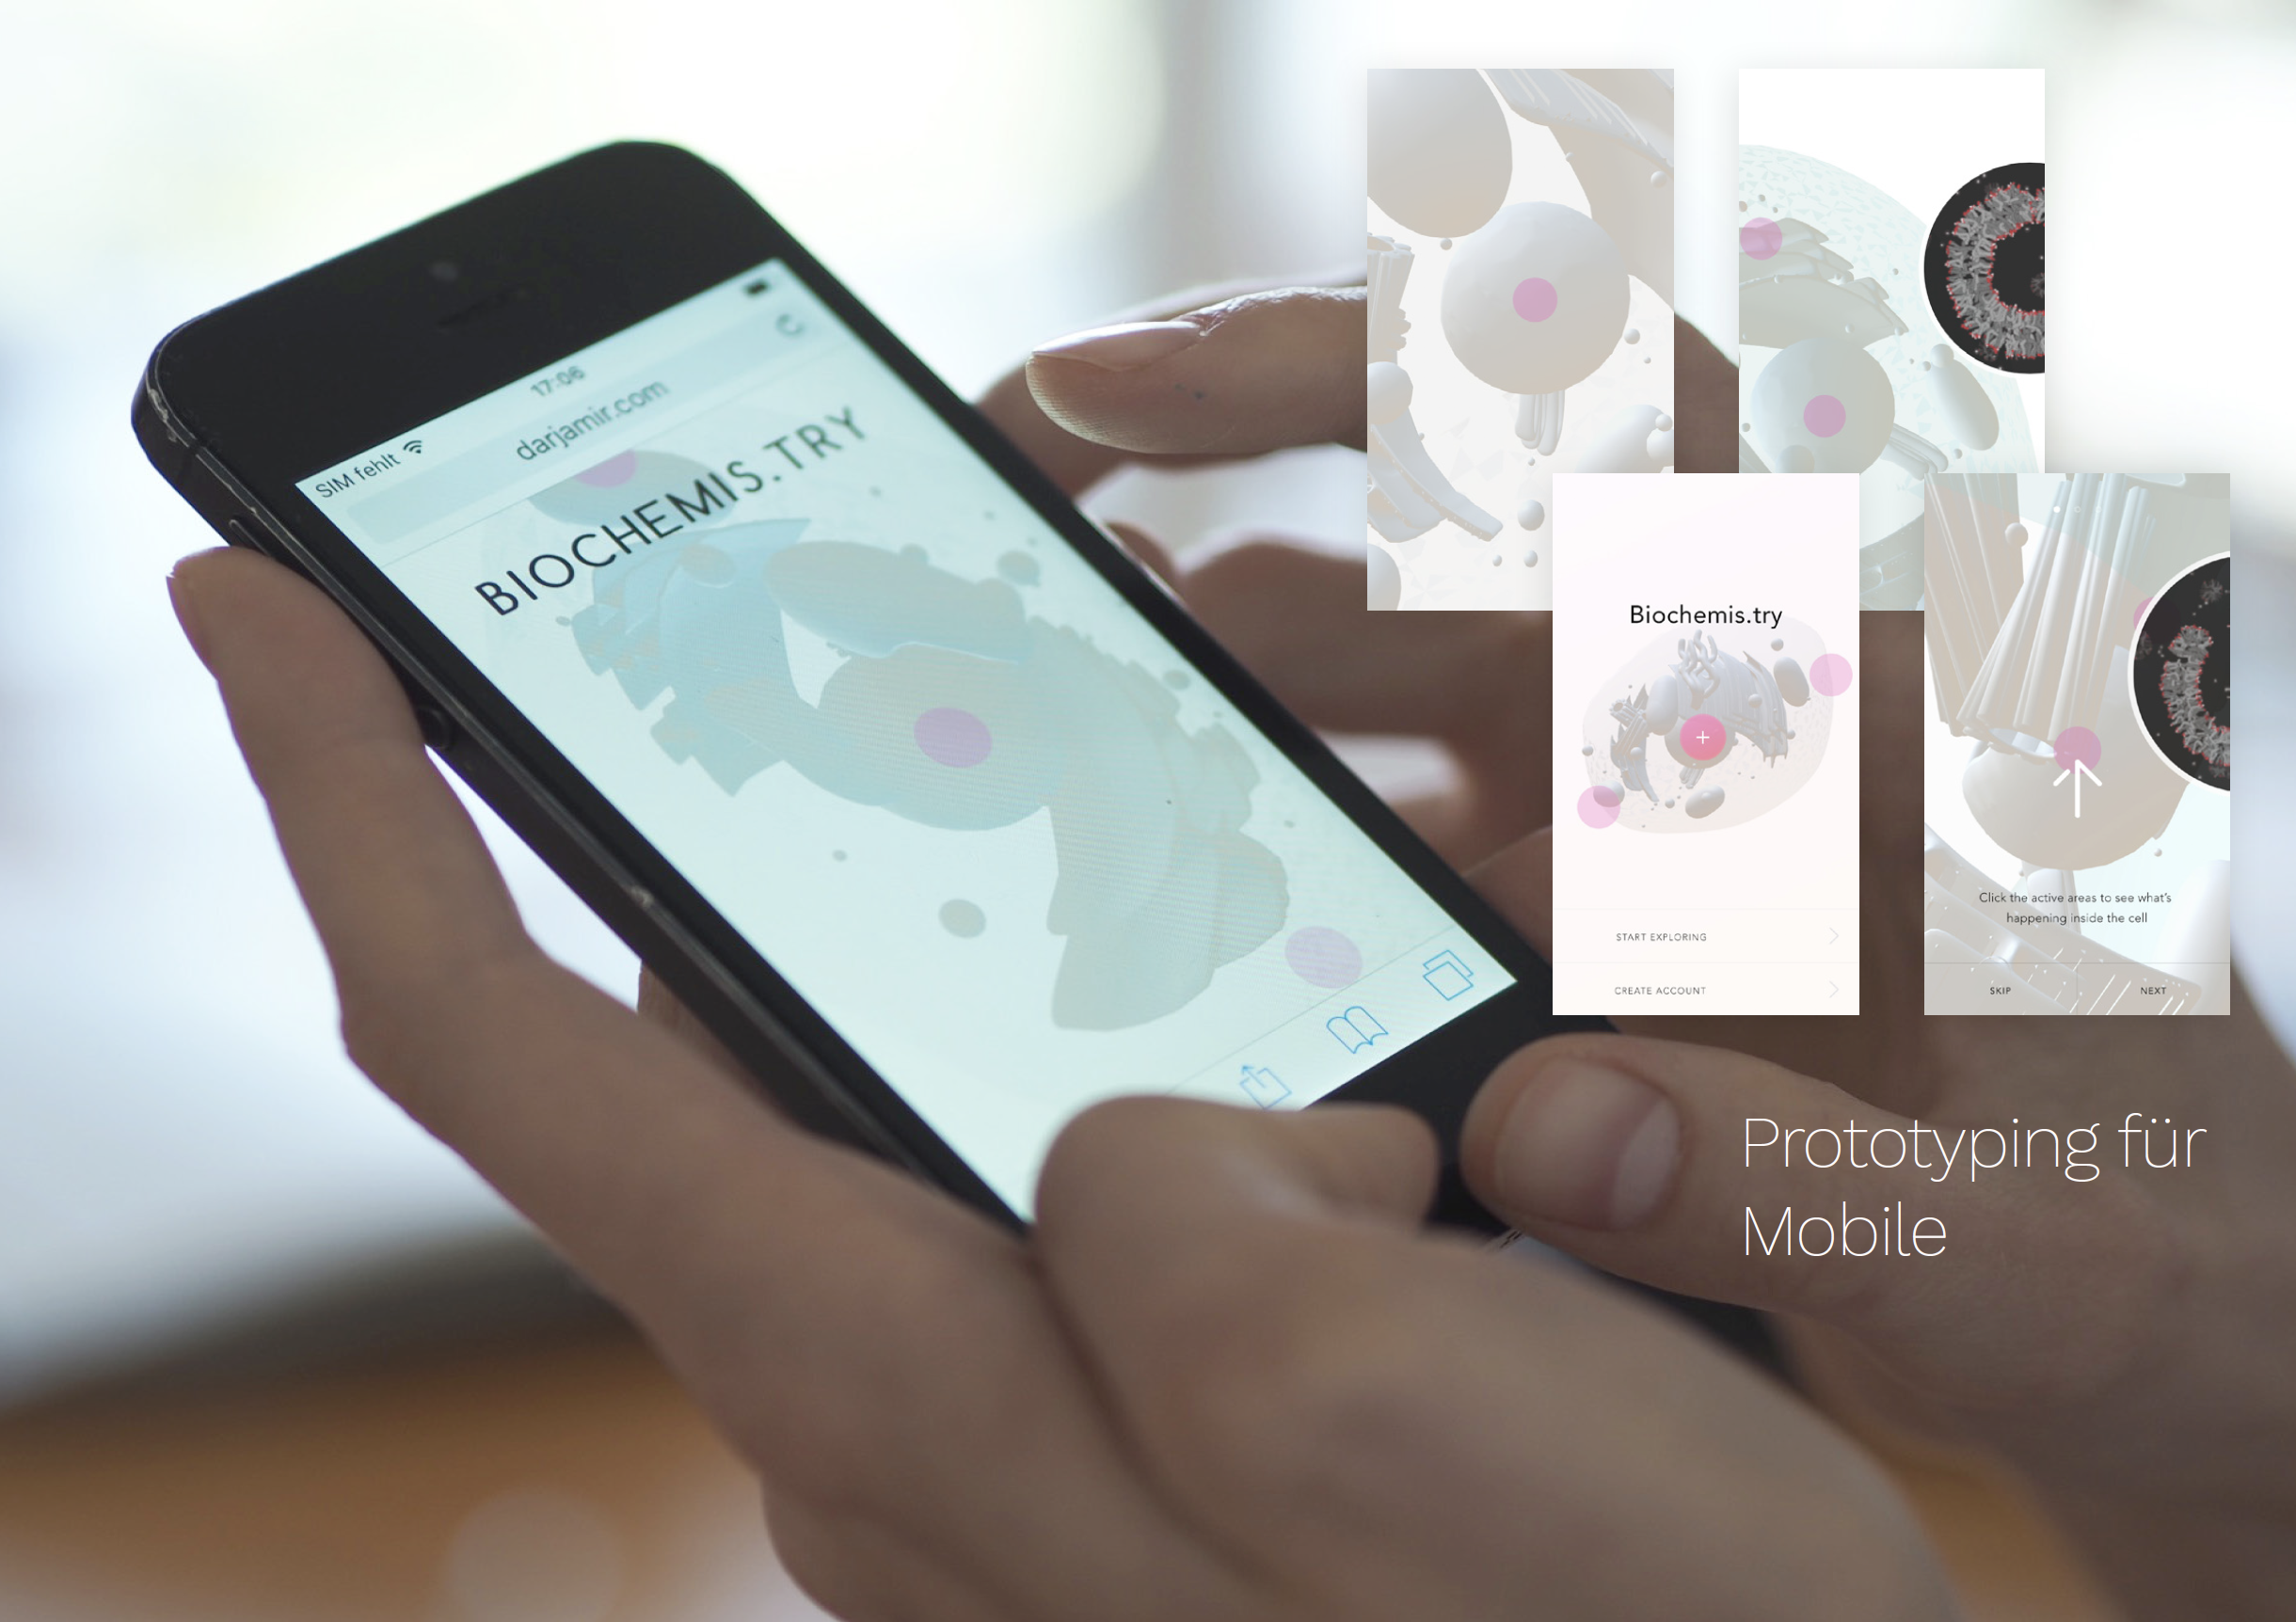 User Testing with mobile prototypes